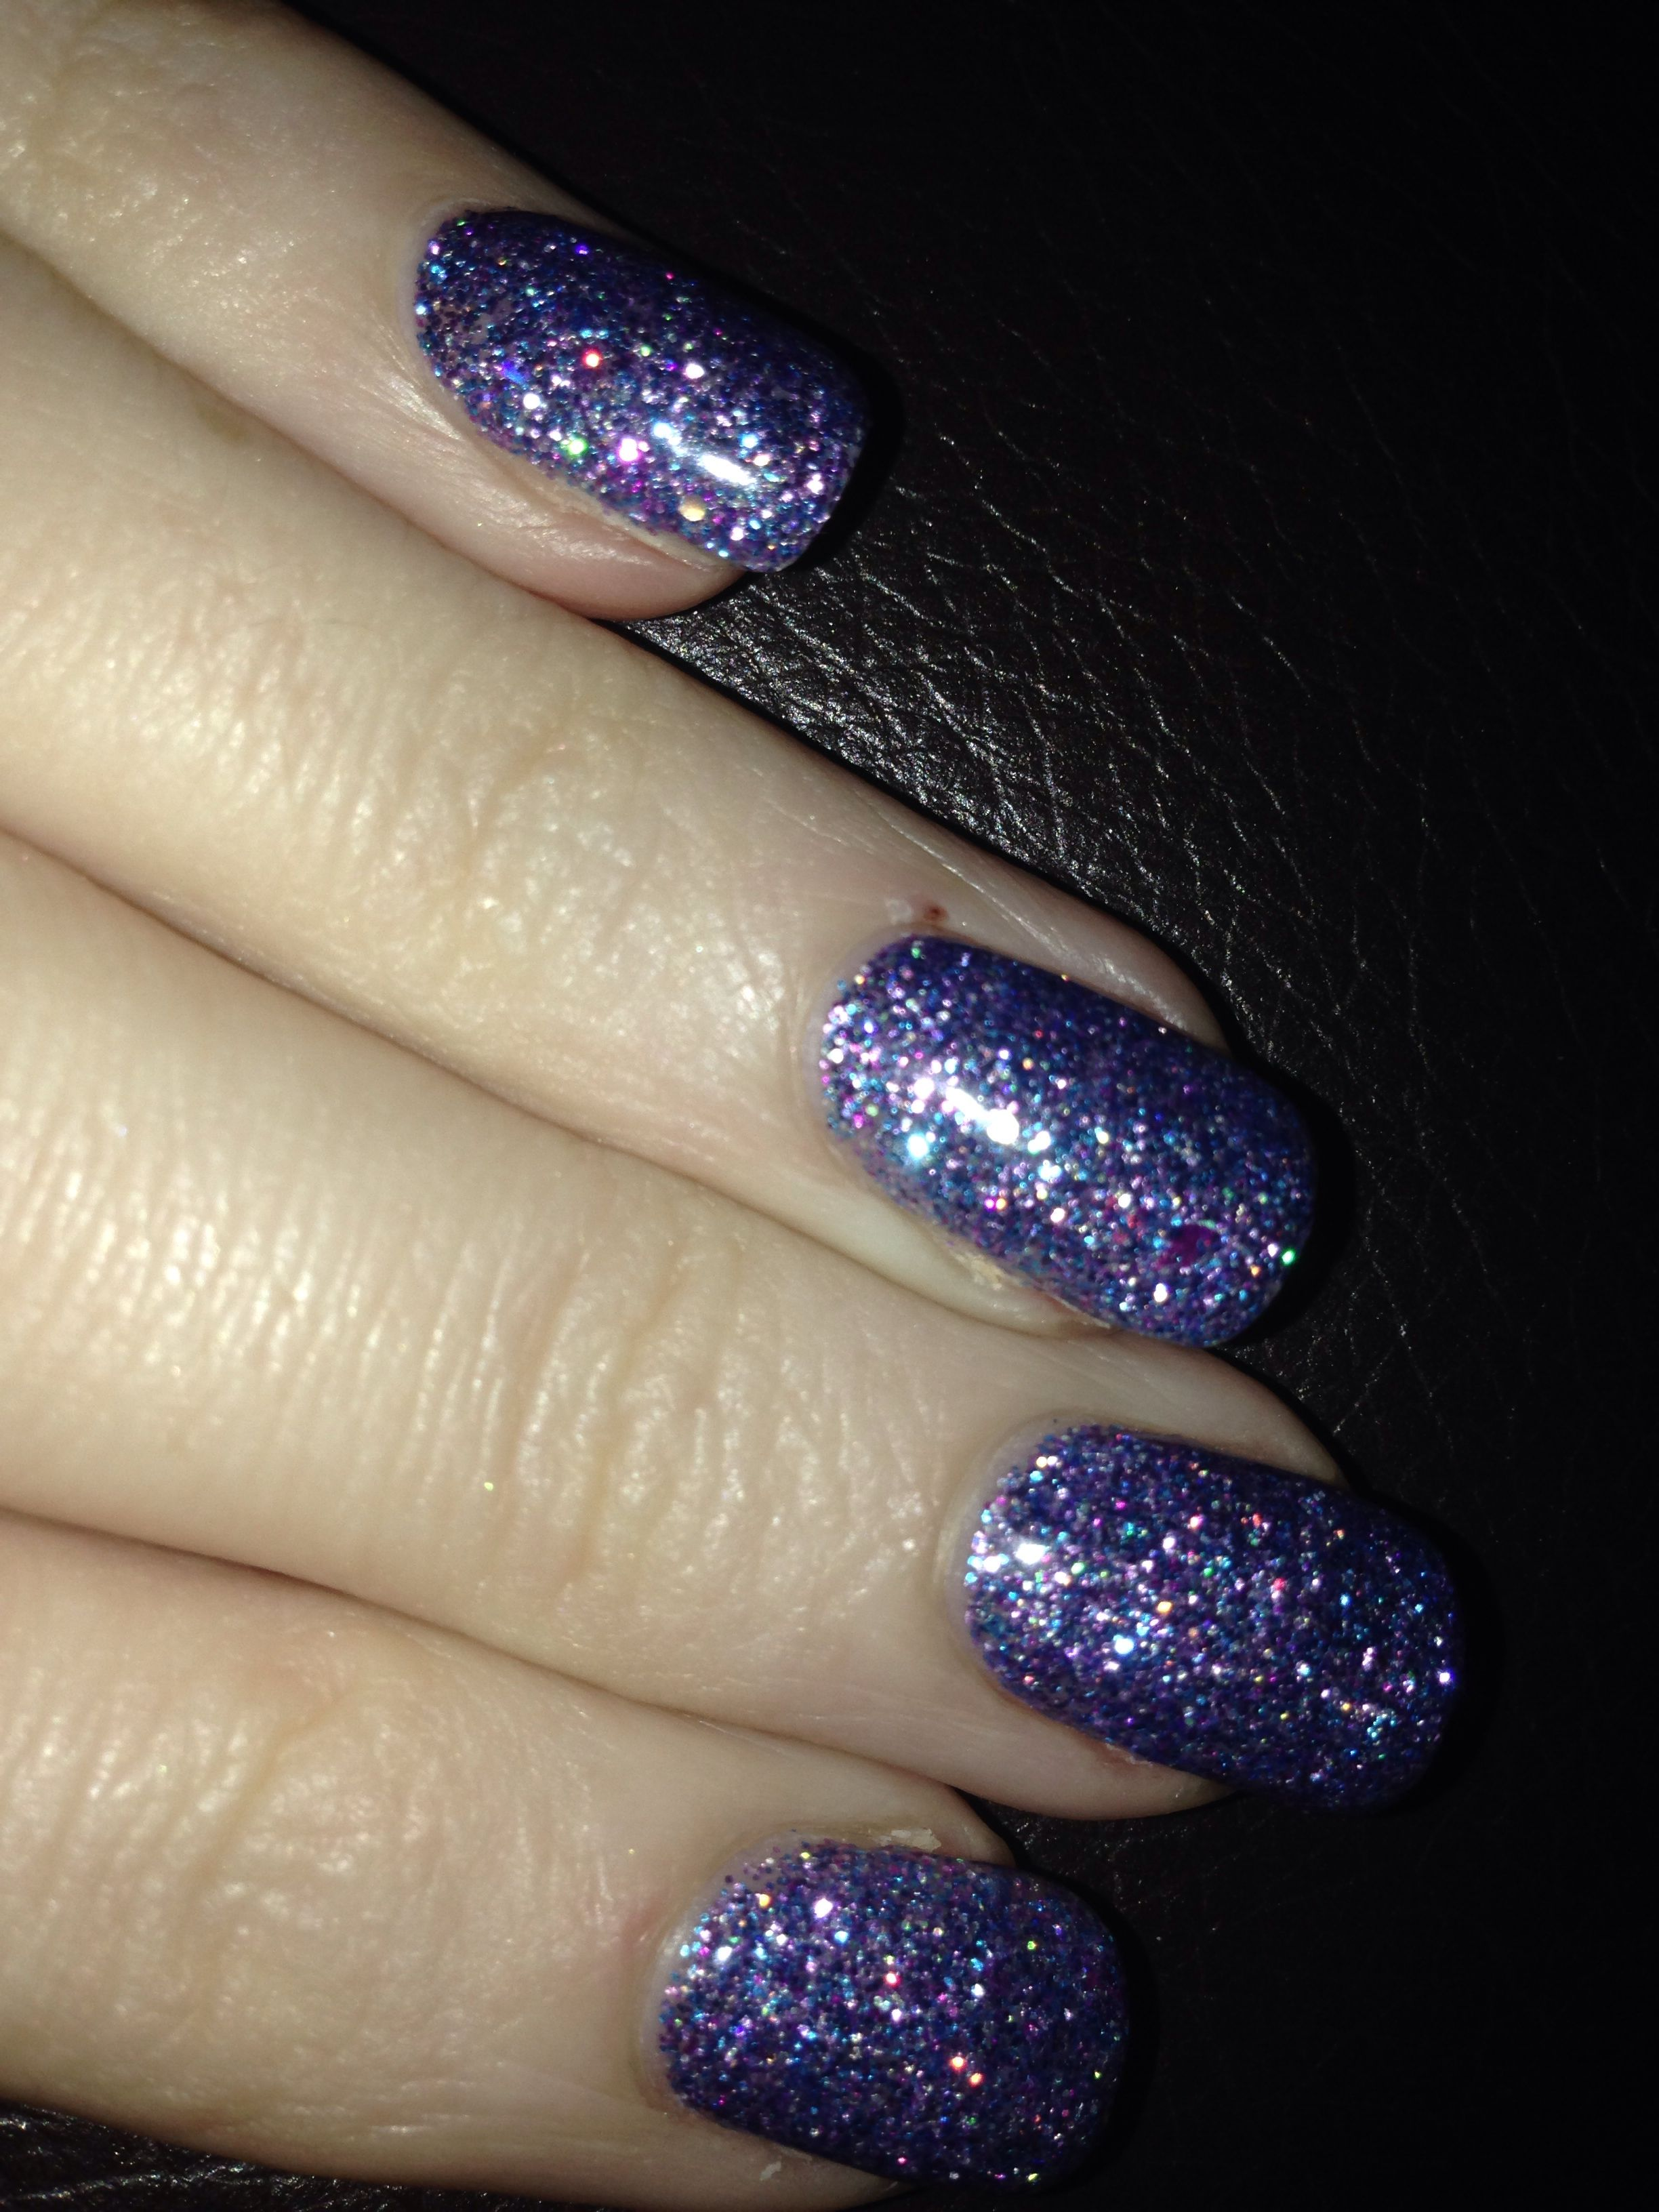 Gorgeous sparkly nails by Alisha